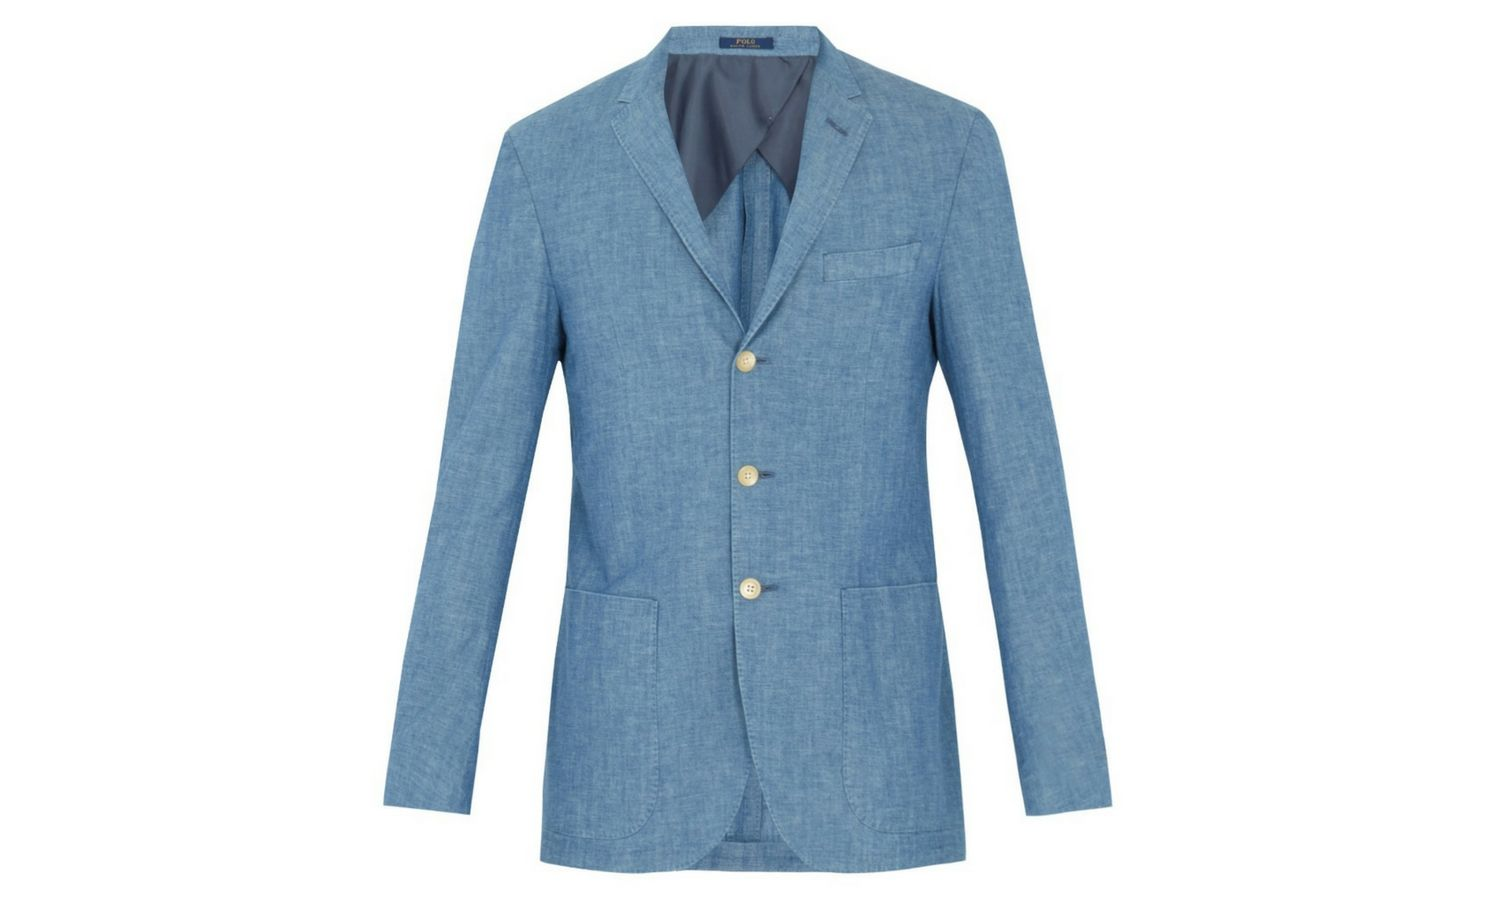 10 Summer Blazers For Men